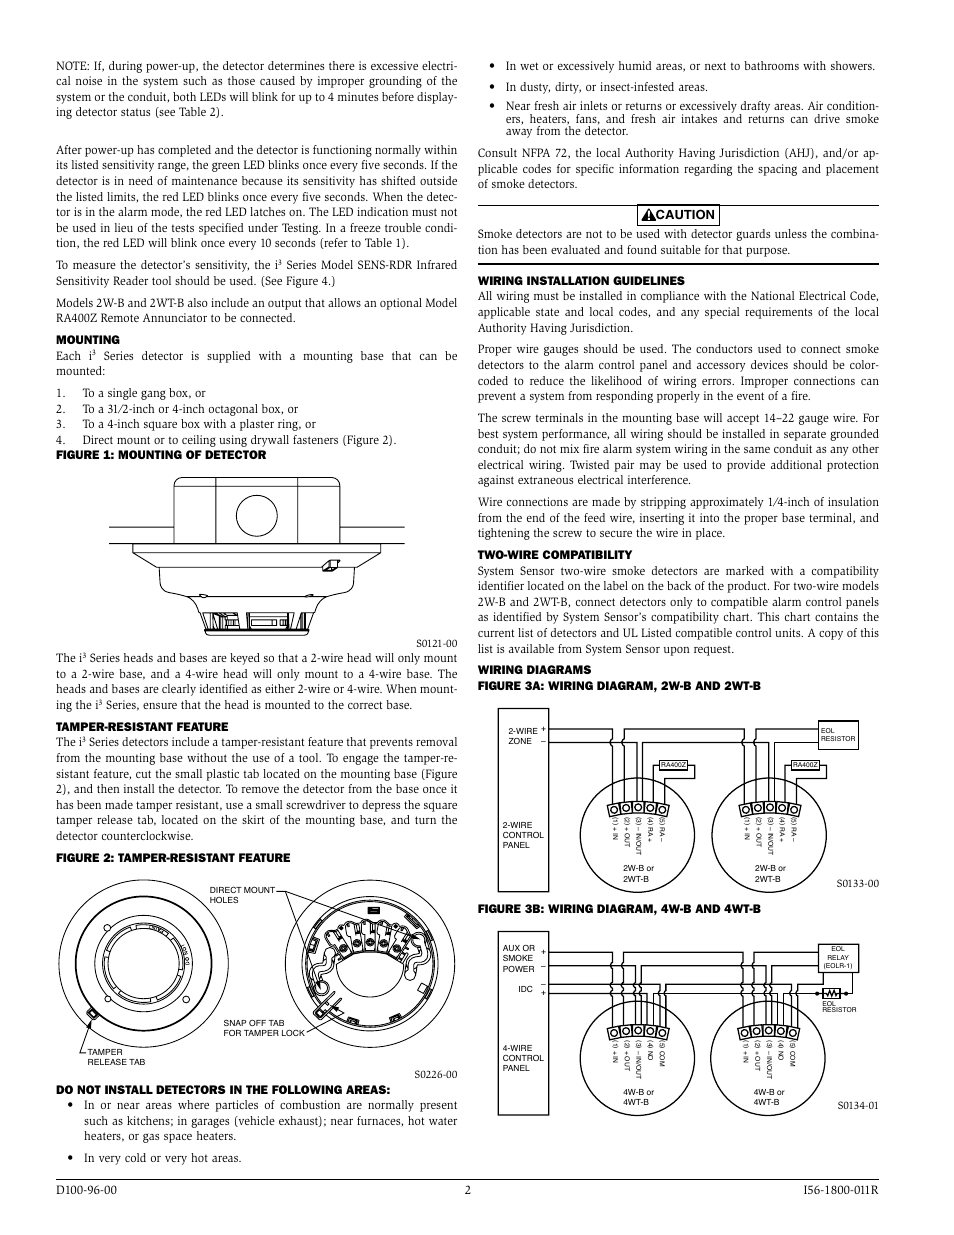 The I Figure 3b Wiring Diagram 4w B And 4wt B System Sensor